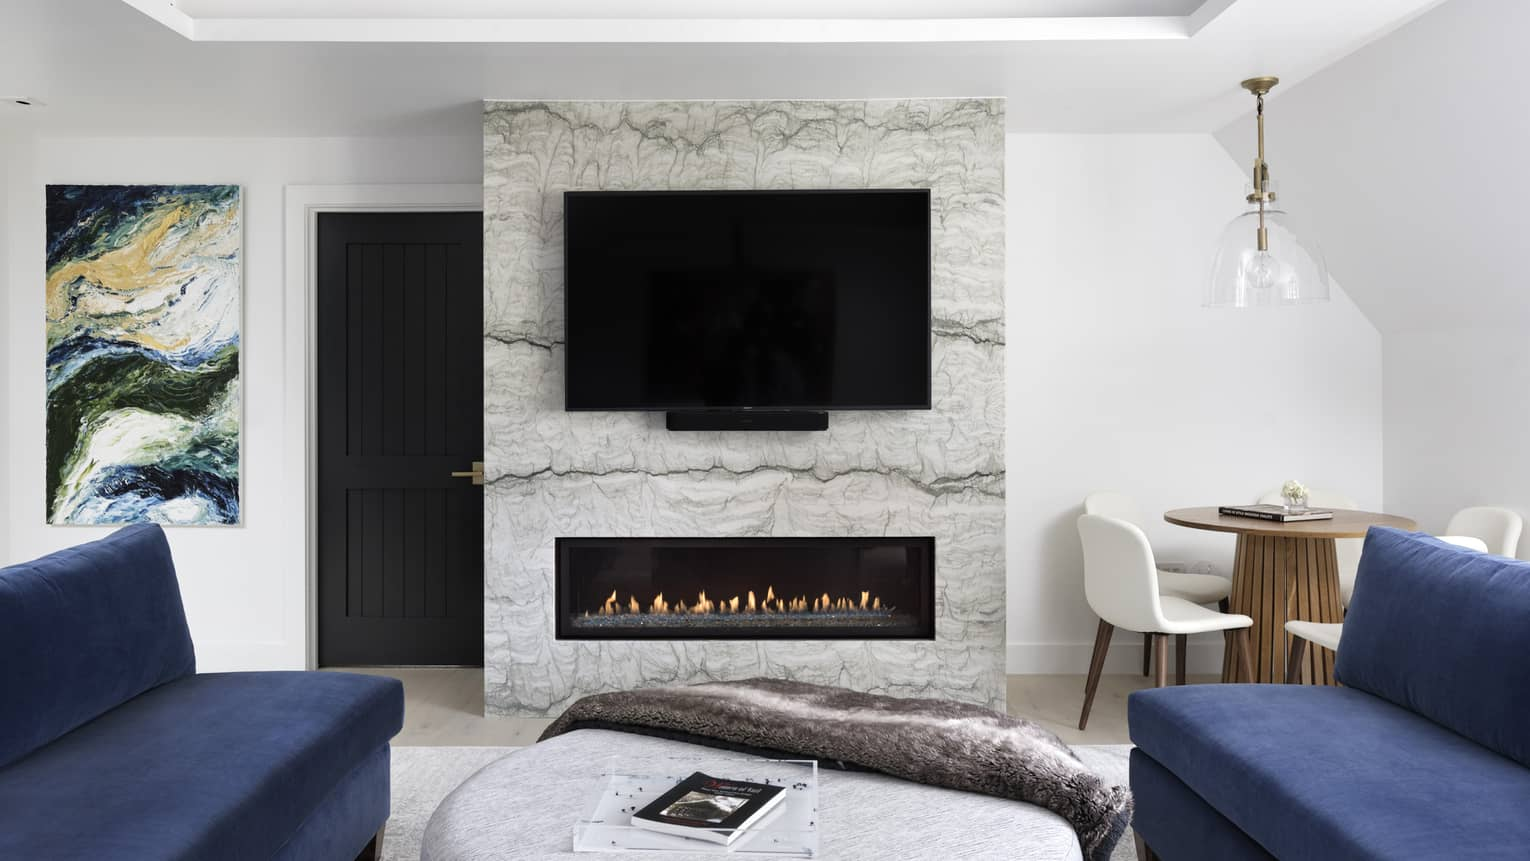 Modern fireplace with marble hearth, flat-screen TV, two dark blue sofas